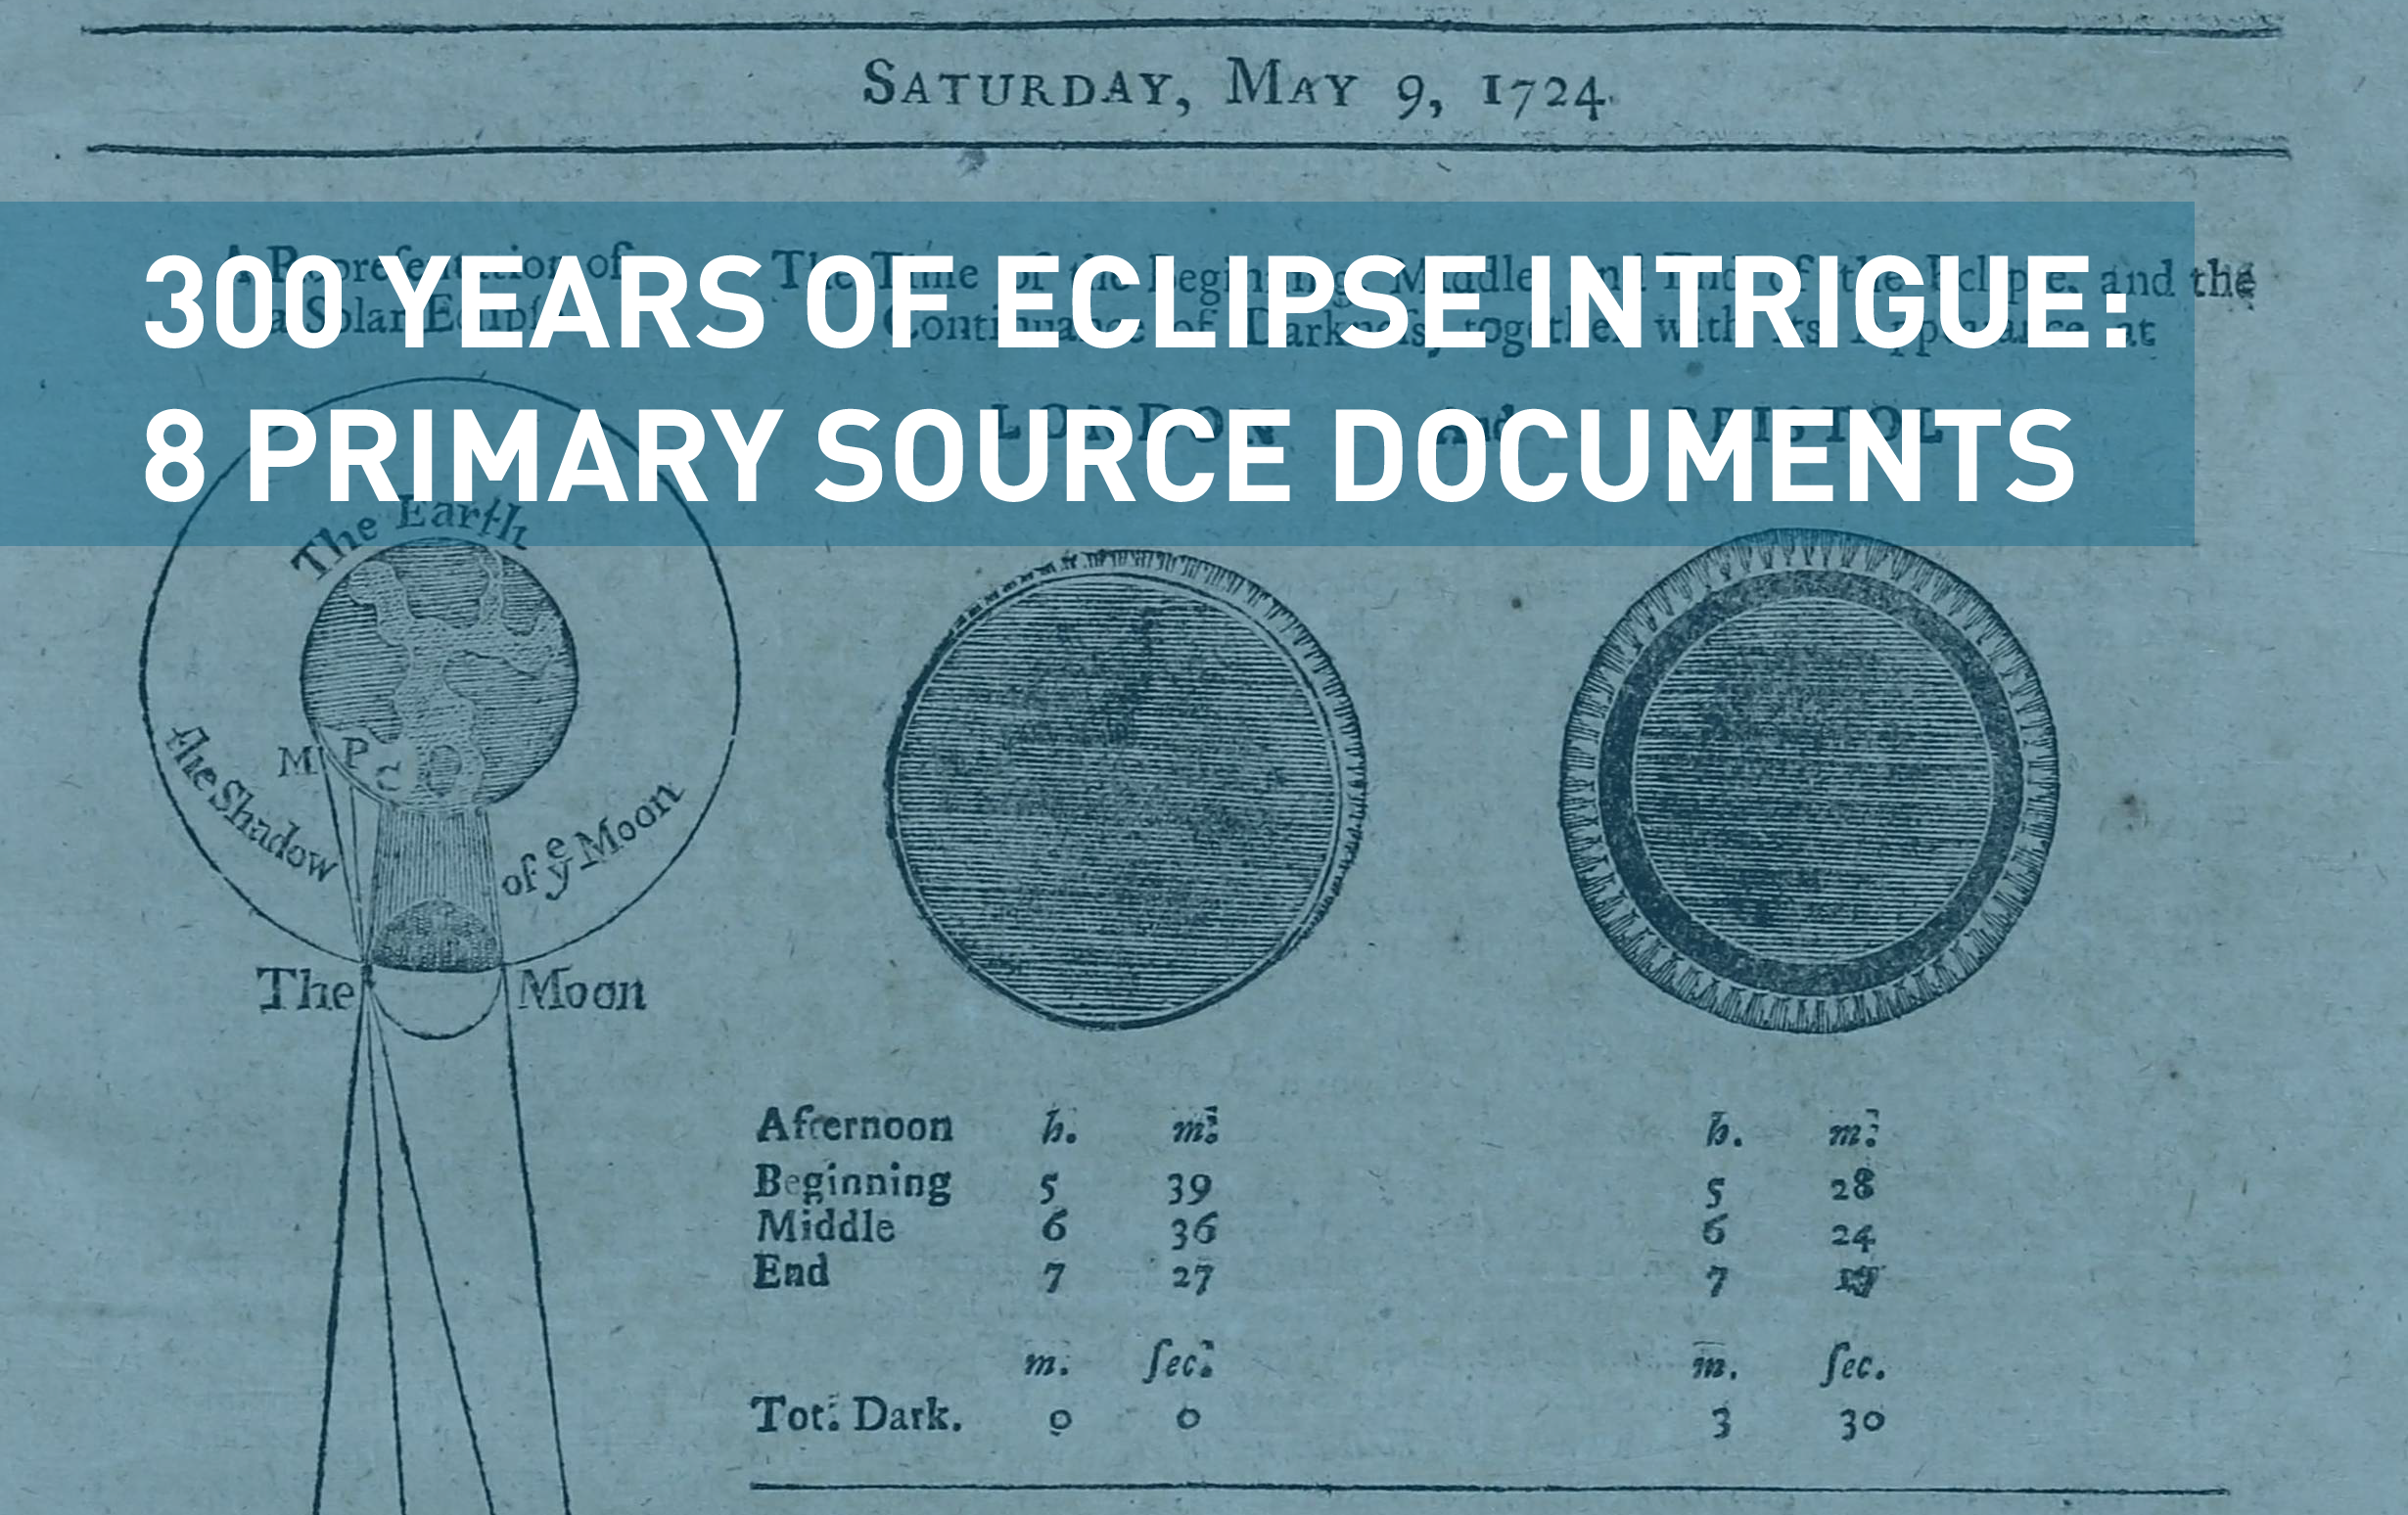 300 Years of Eclipse Intrigue: 8 Primary Sources